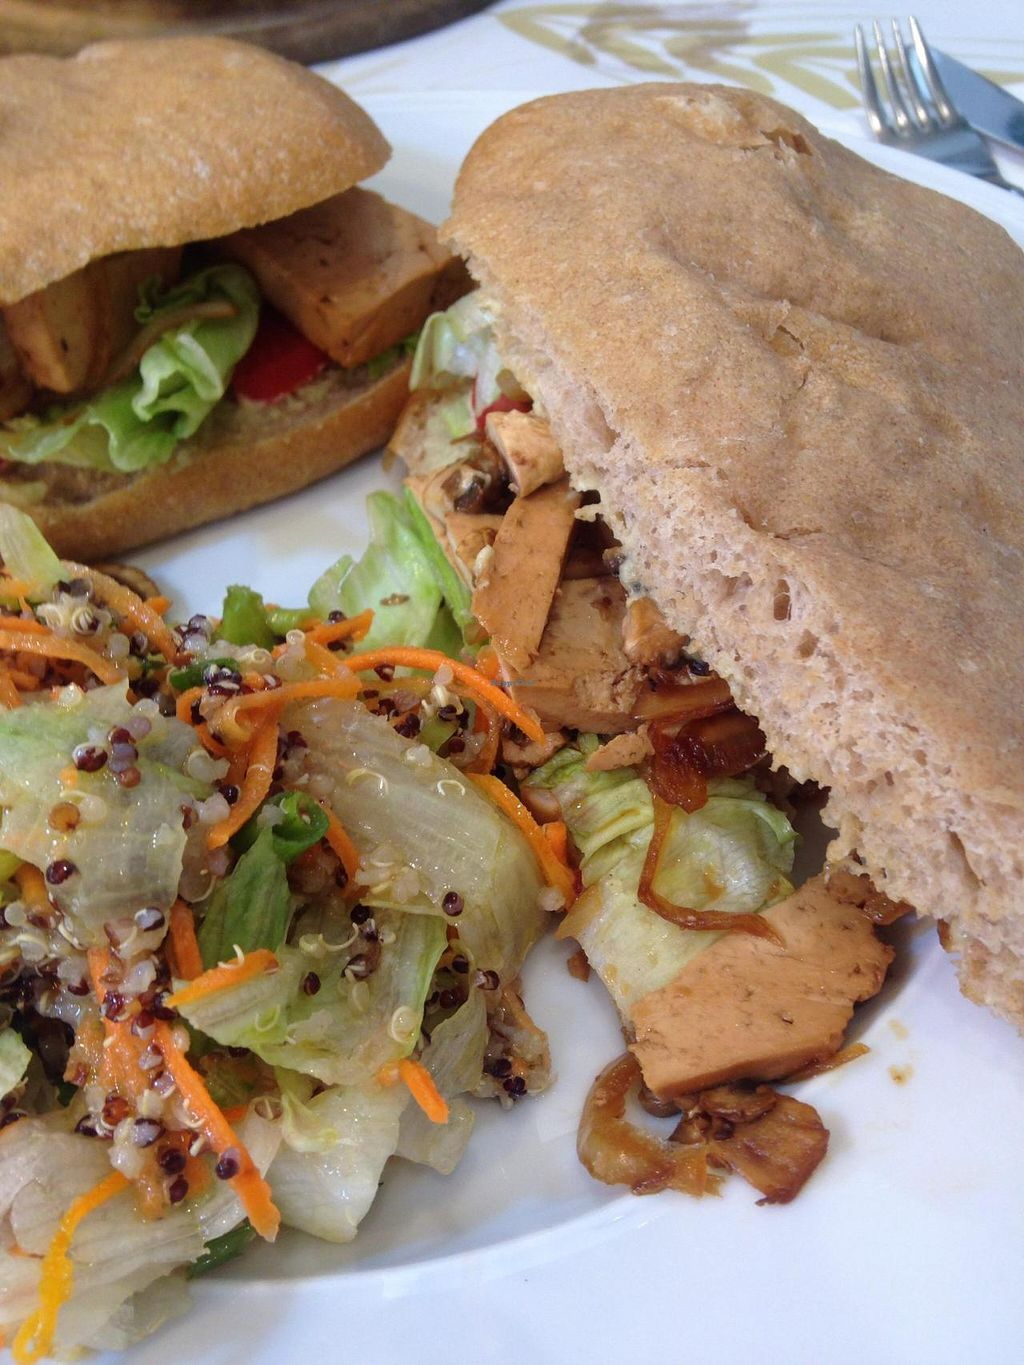 """Photo of Cafe Louise - Ramat HaHayal  by <a href=""""/members/profile/Brok%20O.%20Lee"""">Brok O. Lee</a> <br/>Vegan Sandwich <br/> October 16, 2014  - <a href='/contact/abuse/image/46853/83081'>Report</a>"""